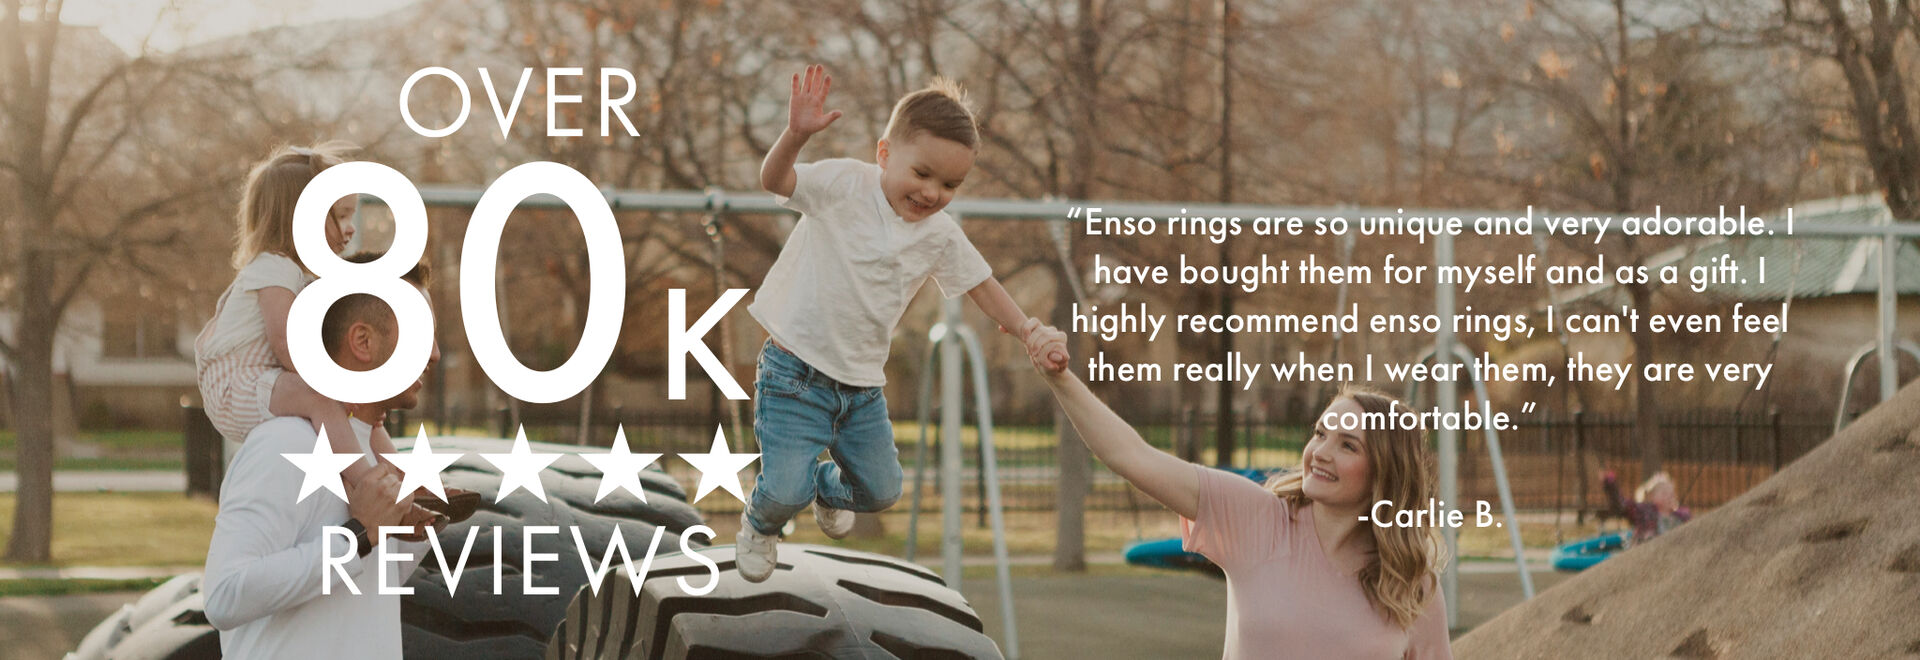 Enso has more than 80,000 5-star reviews!